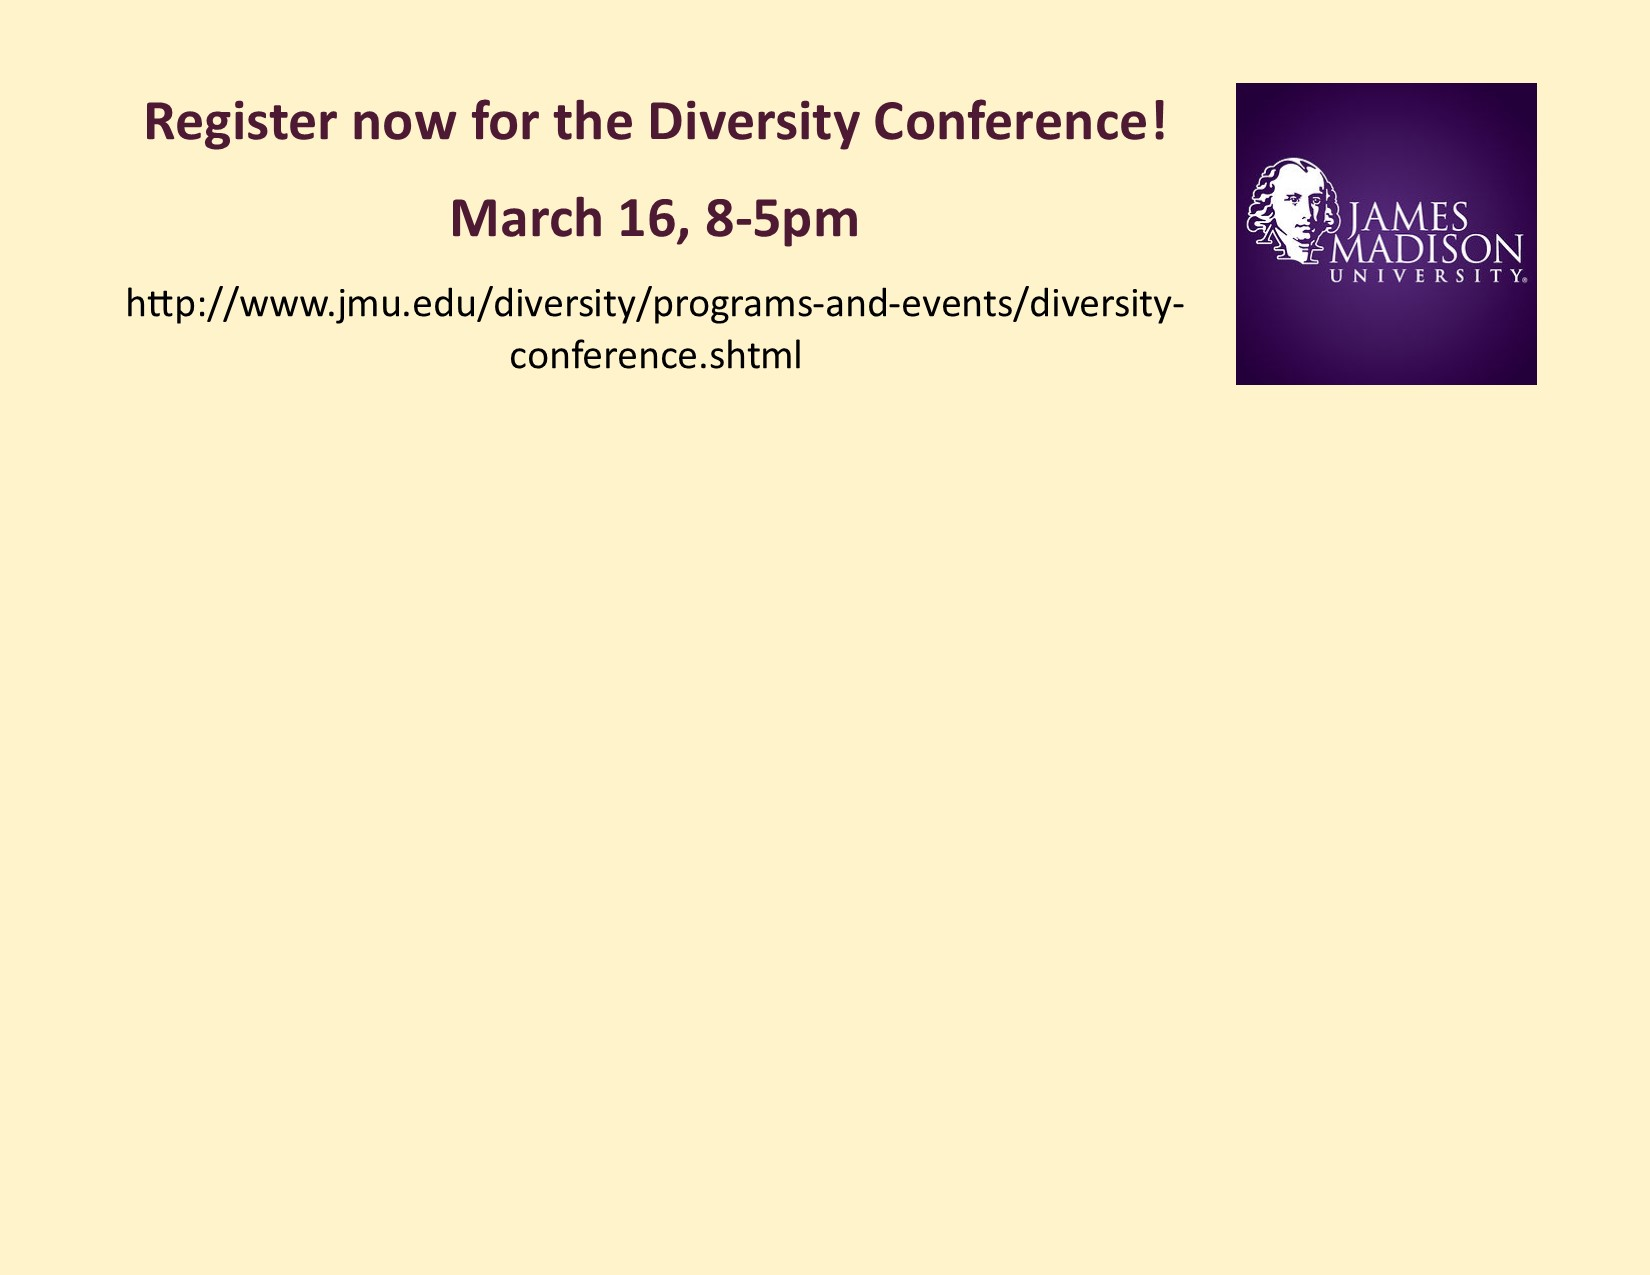 Image: Register for the Diversity Conference!